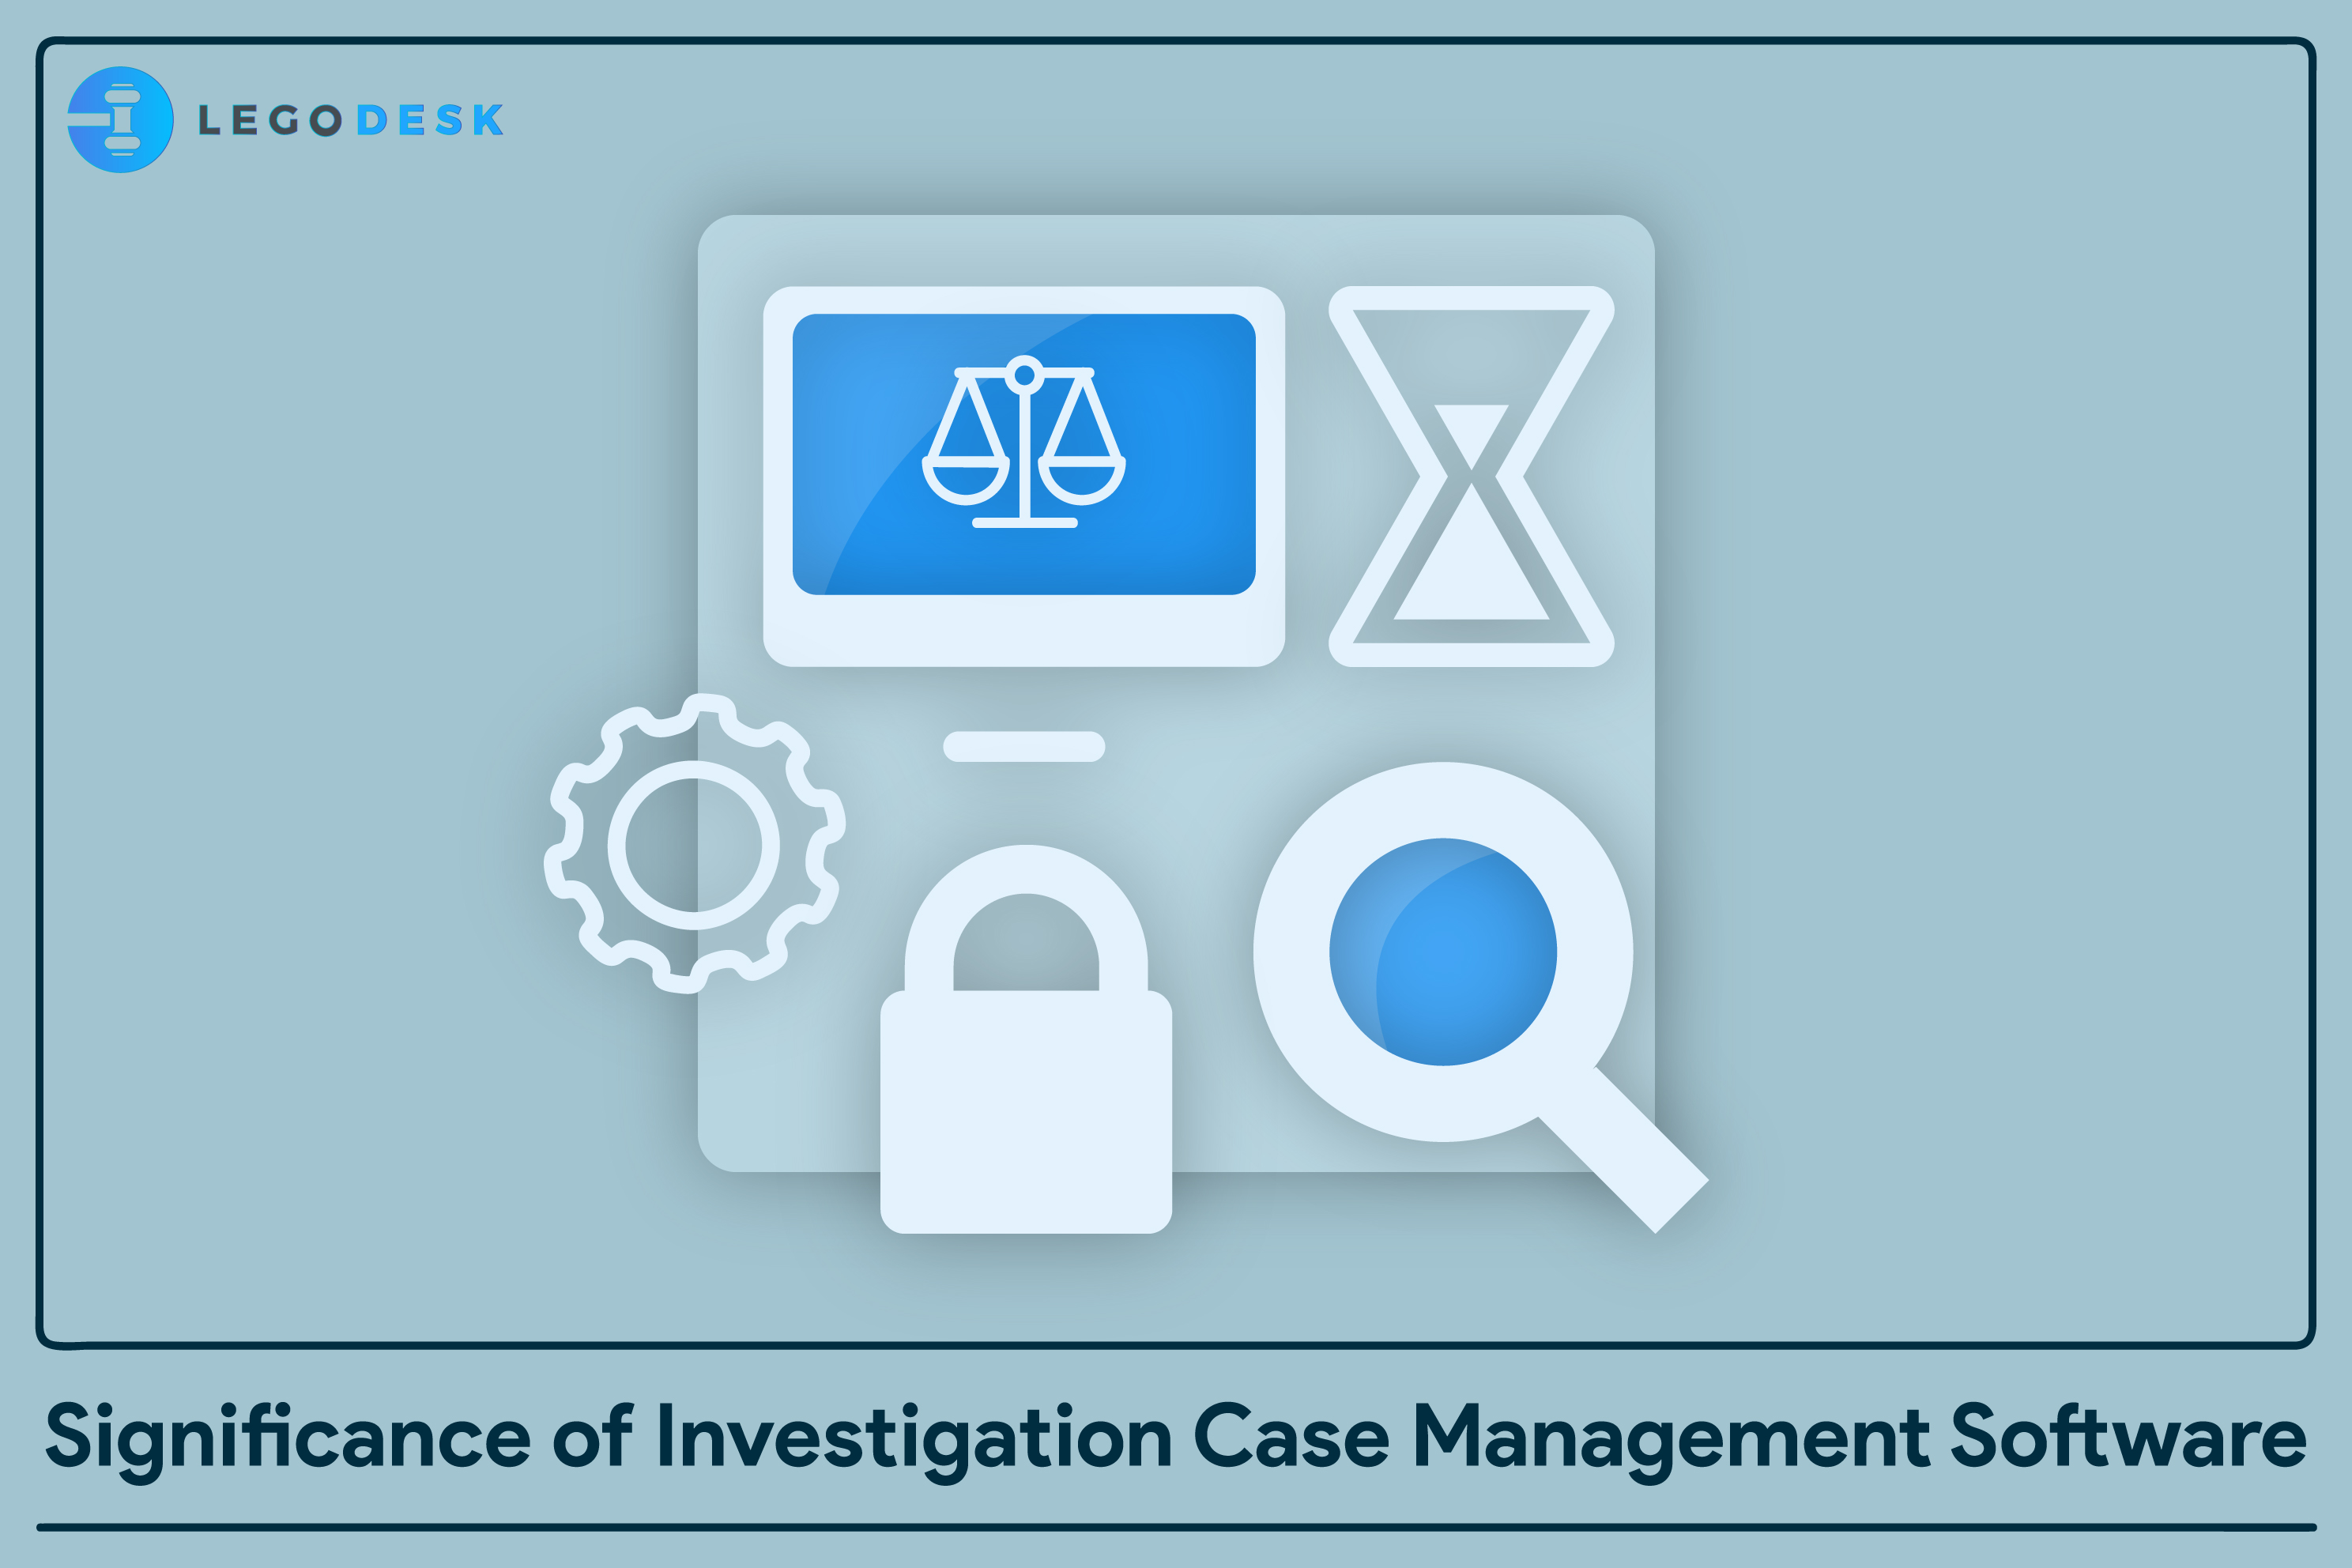 Significance of Investigation Case Management Software